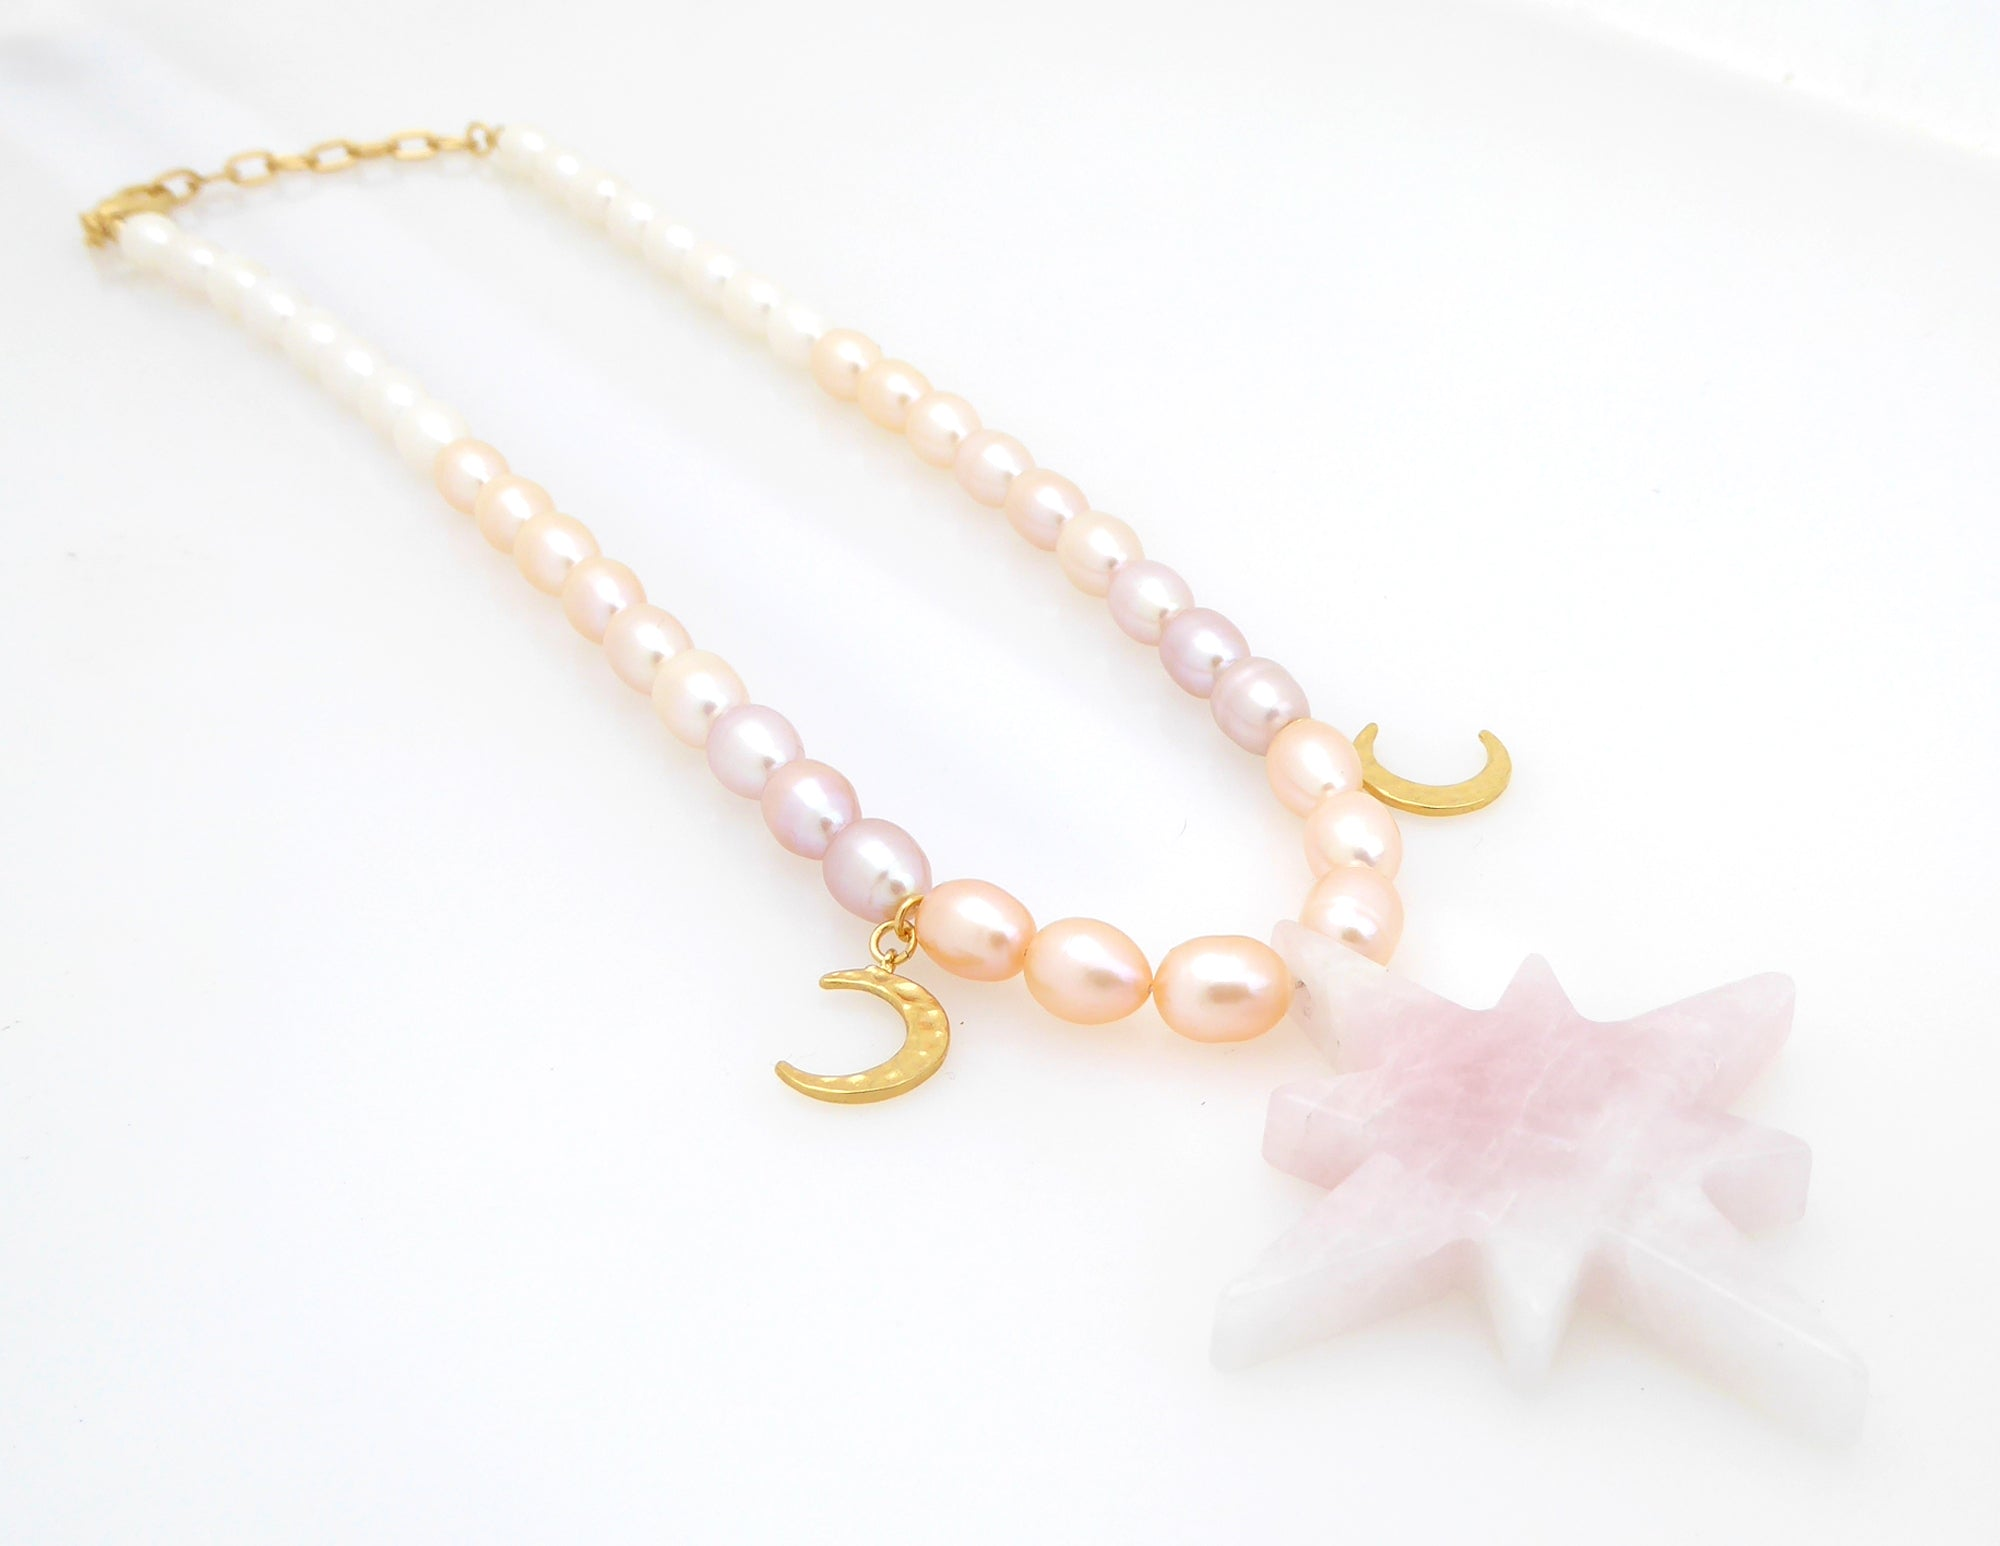 Rose quartz star necklace